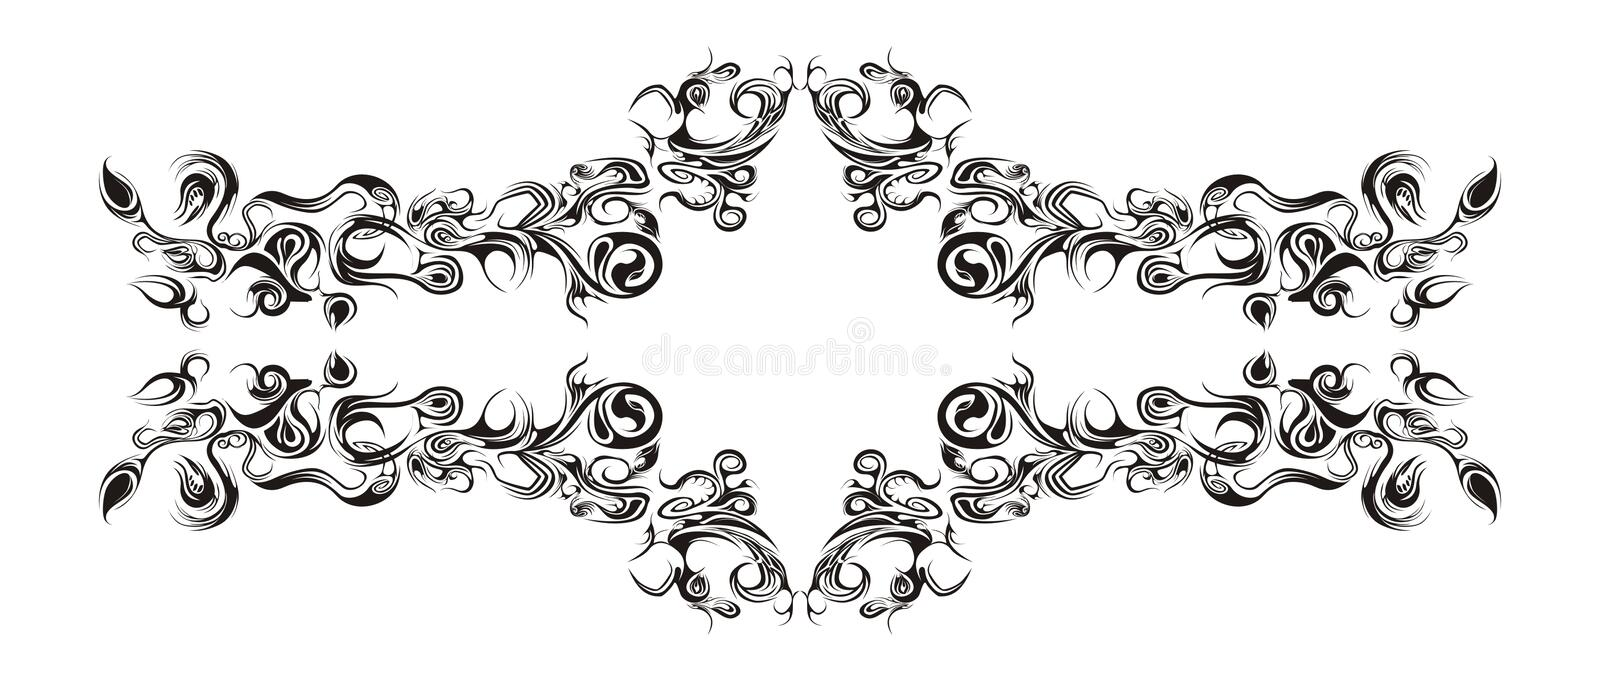 Horizontal floral ornament royalty free stock photography